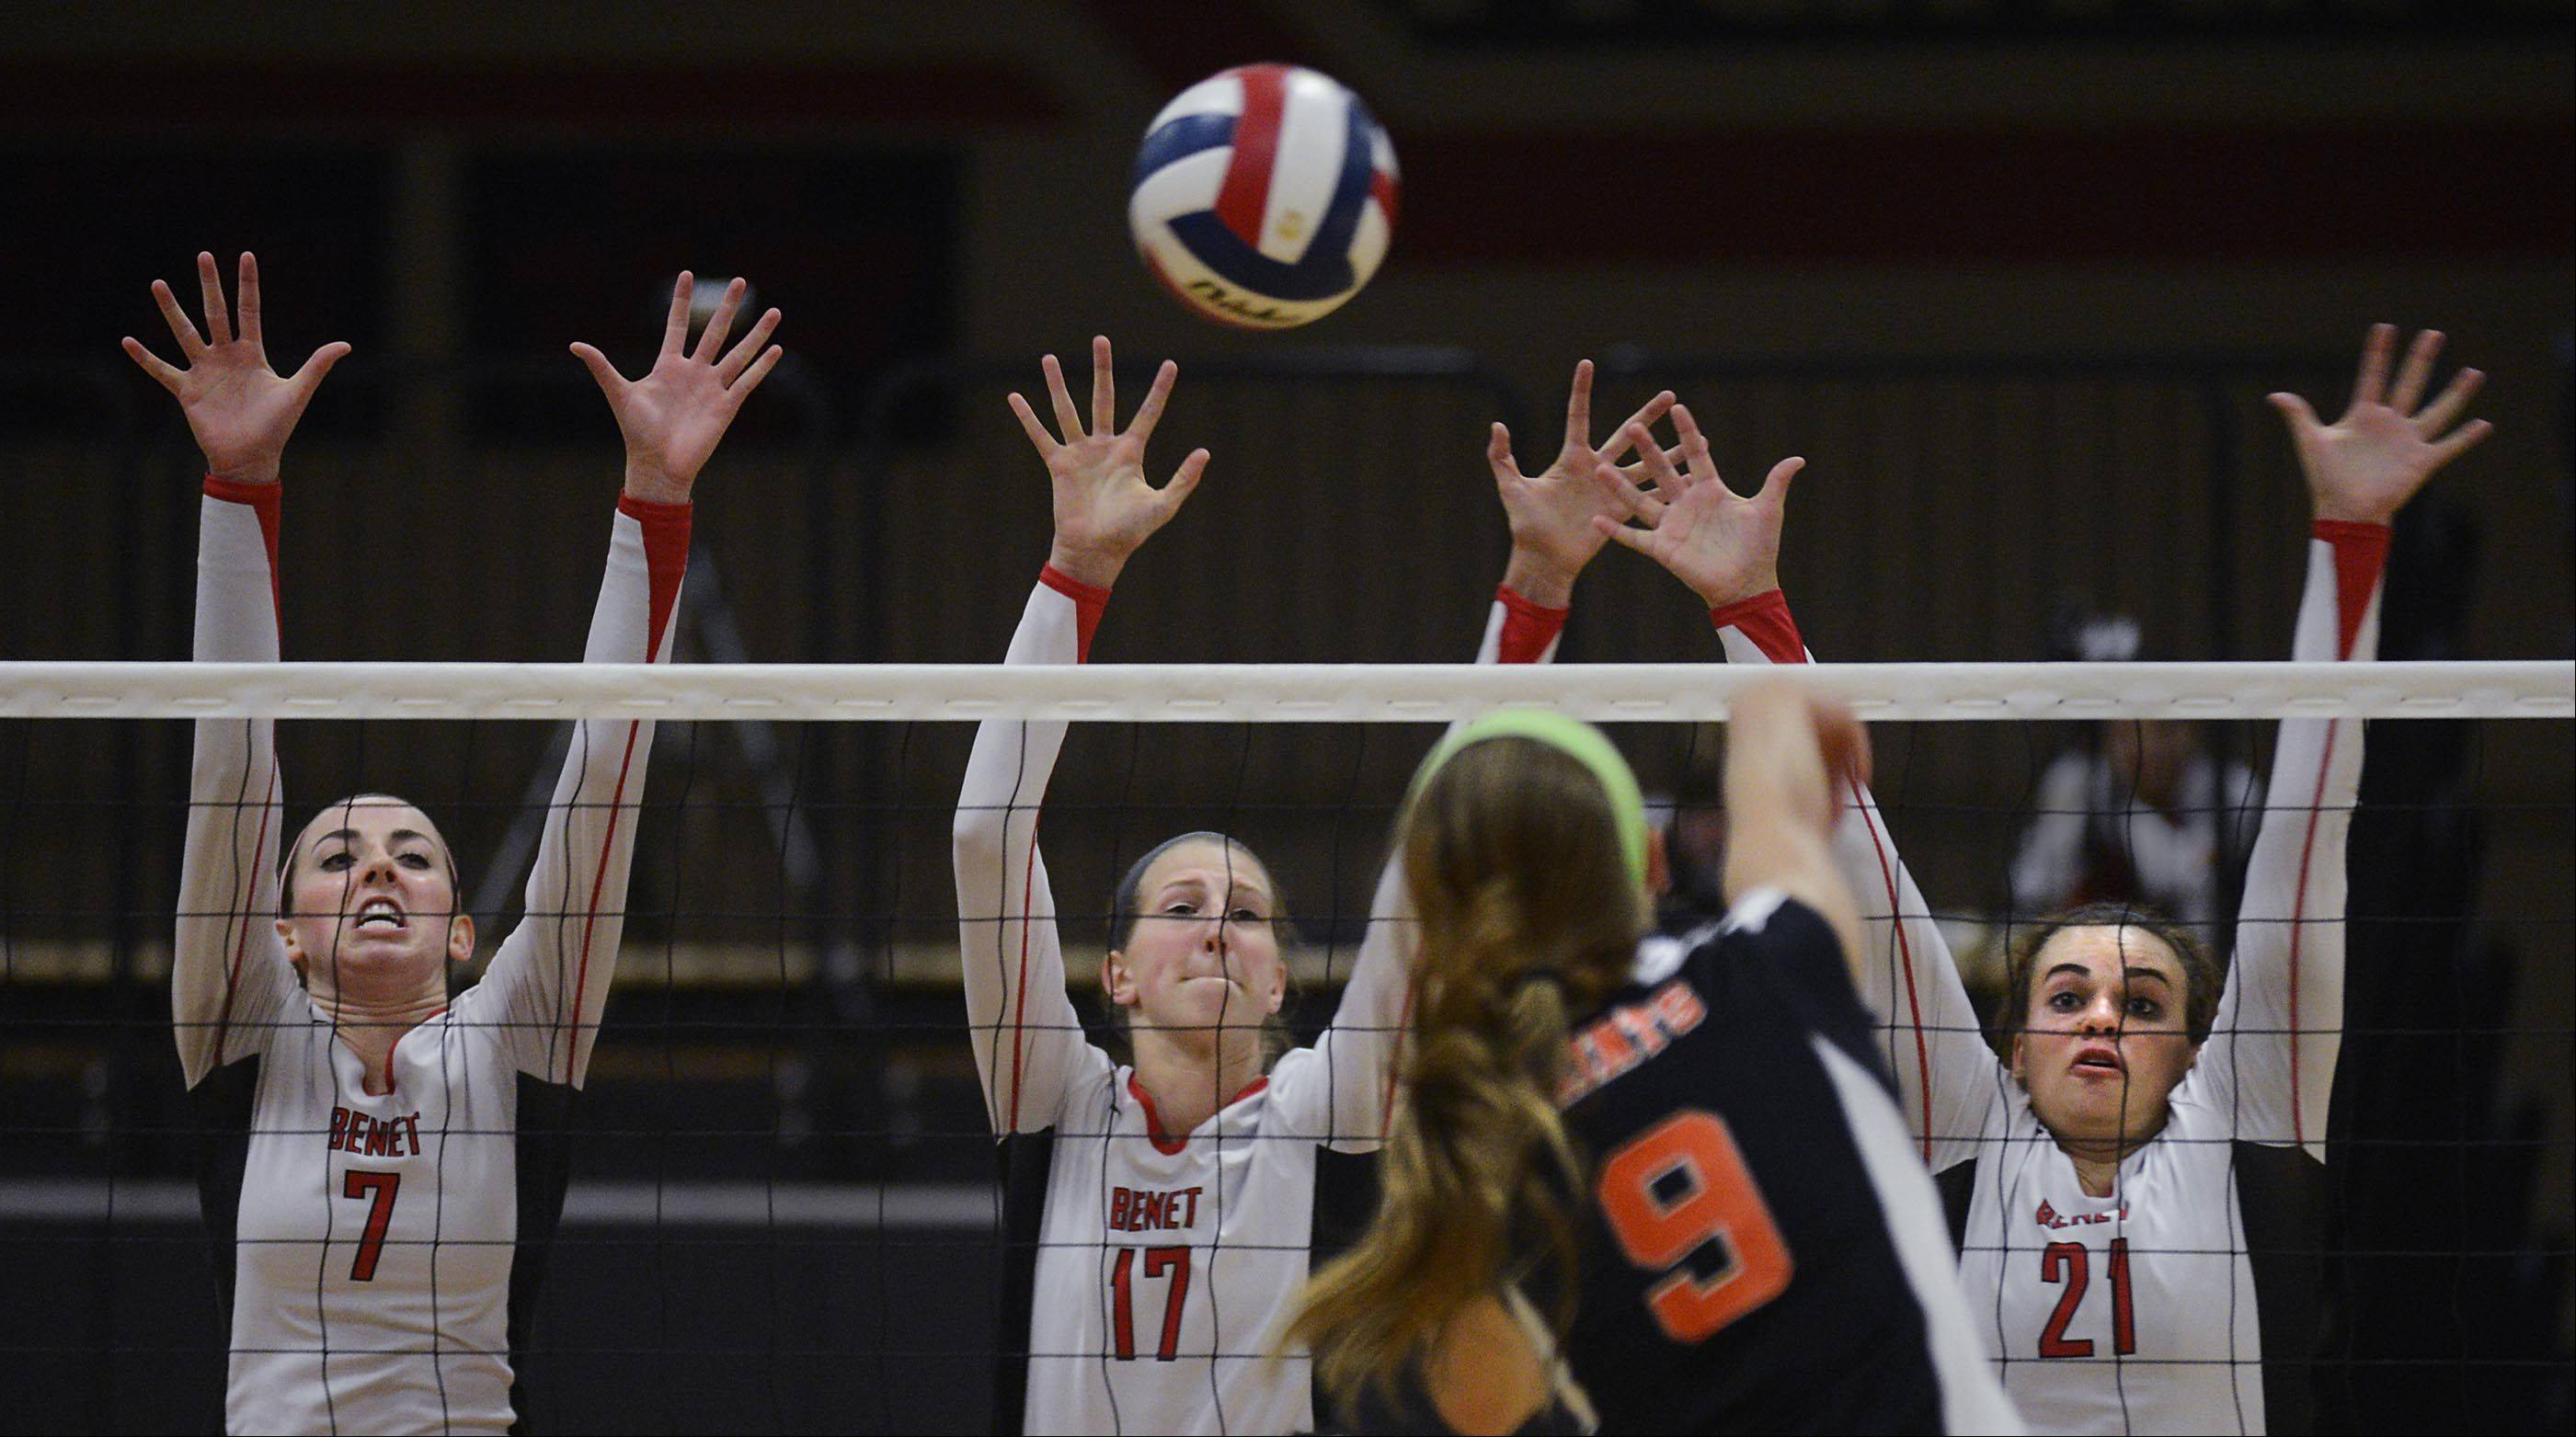 Megan Schildmeyer had 13 digs and 6 kills in St. Charles East's upset of two-time defending state champion Benet Wednesday night.